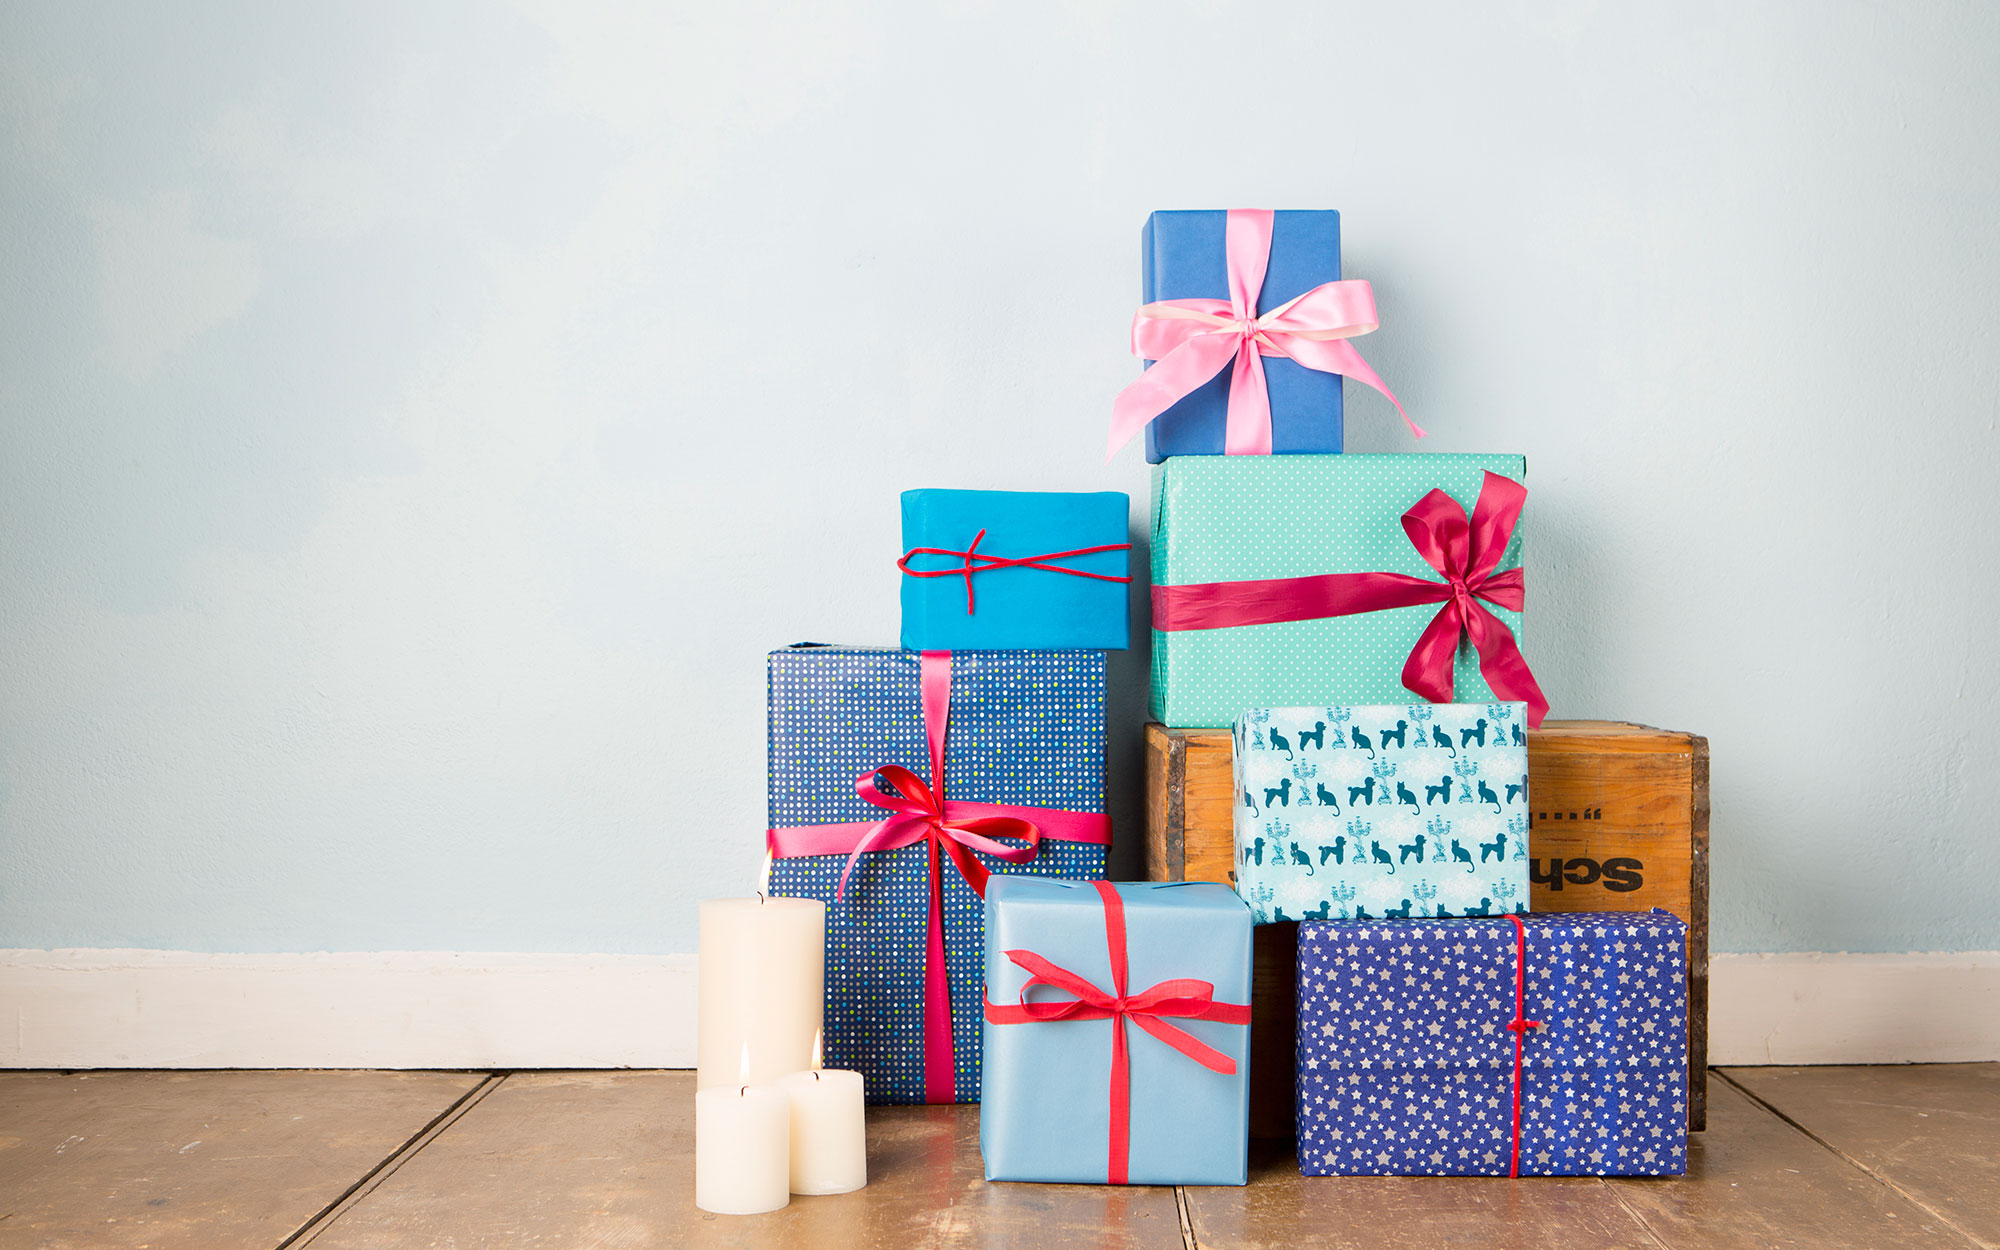 Can You Bring Wrapped Gifts Through Security?